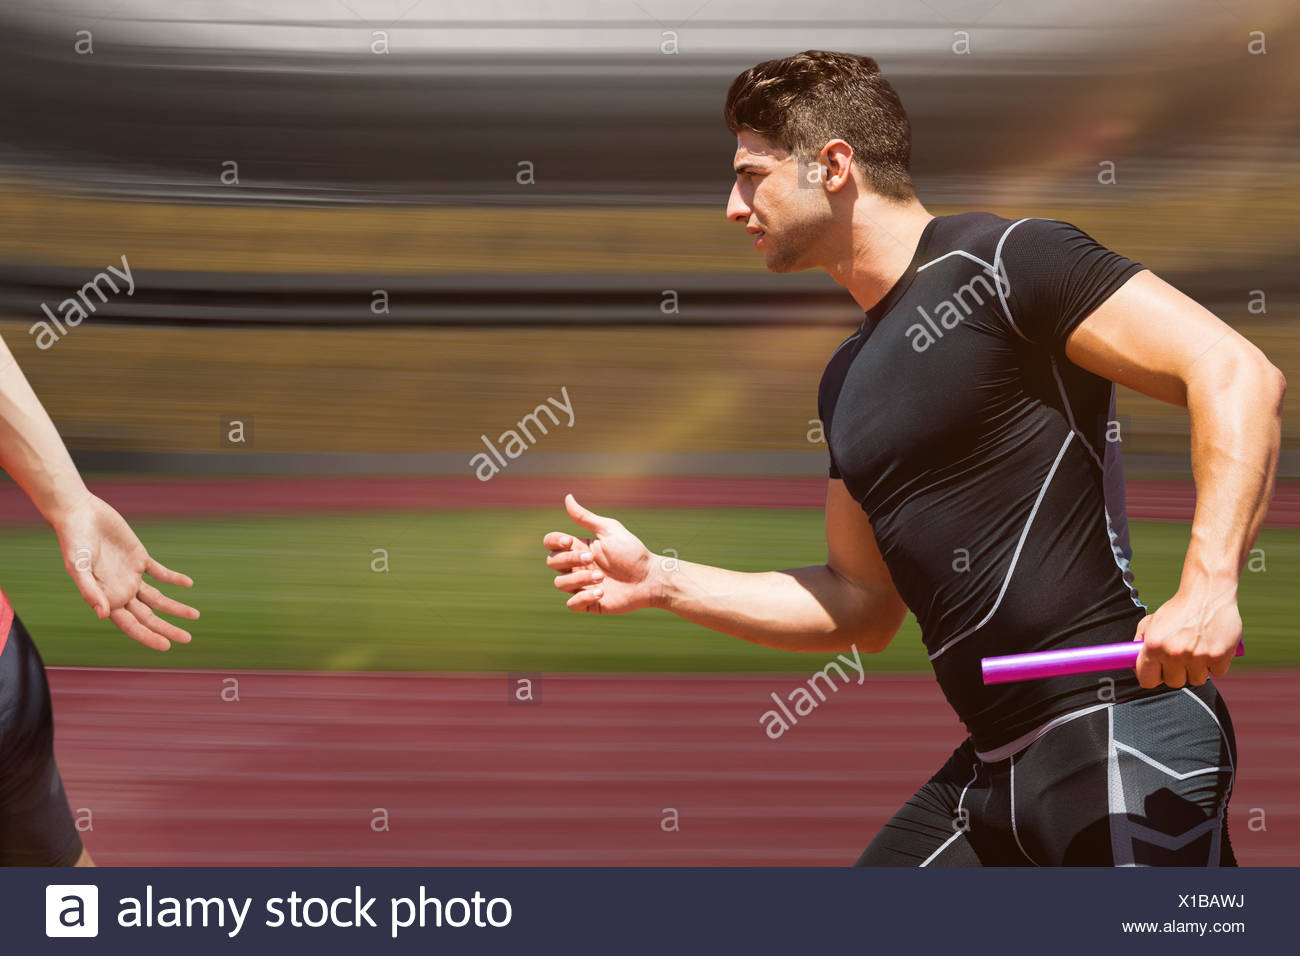 Composite image of athletic man running a relays - Stock Image